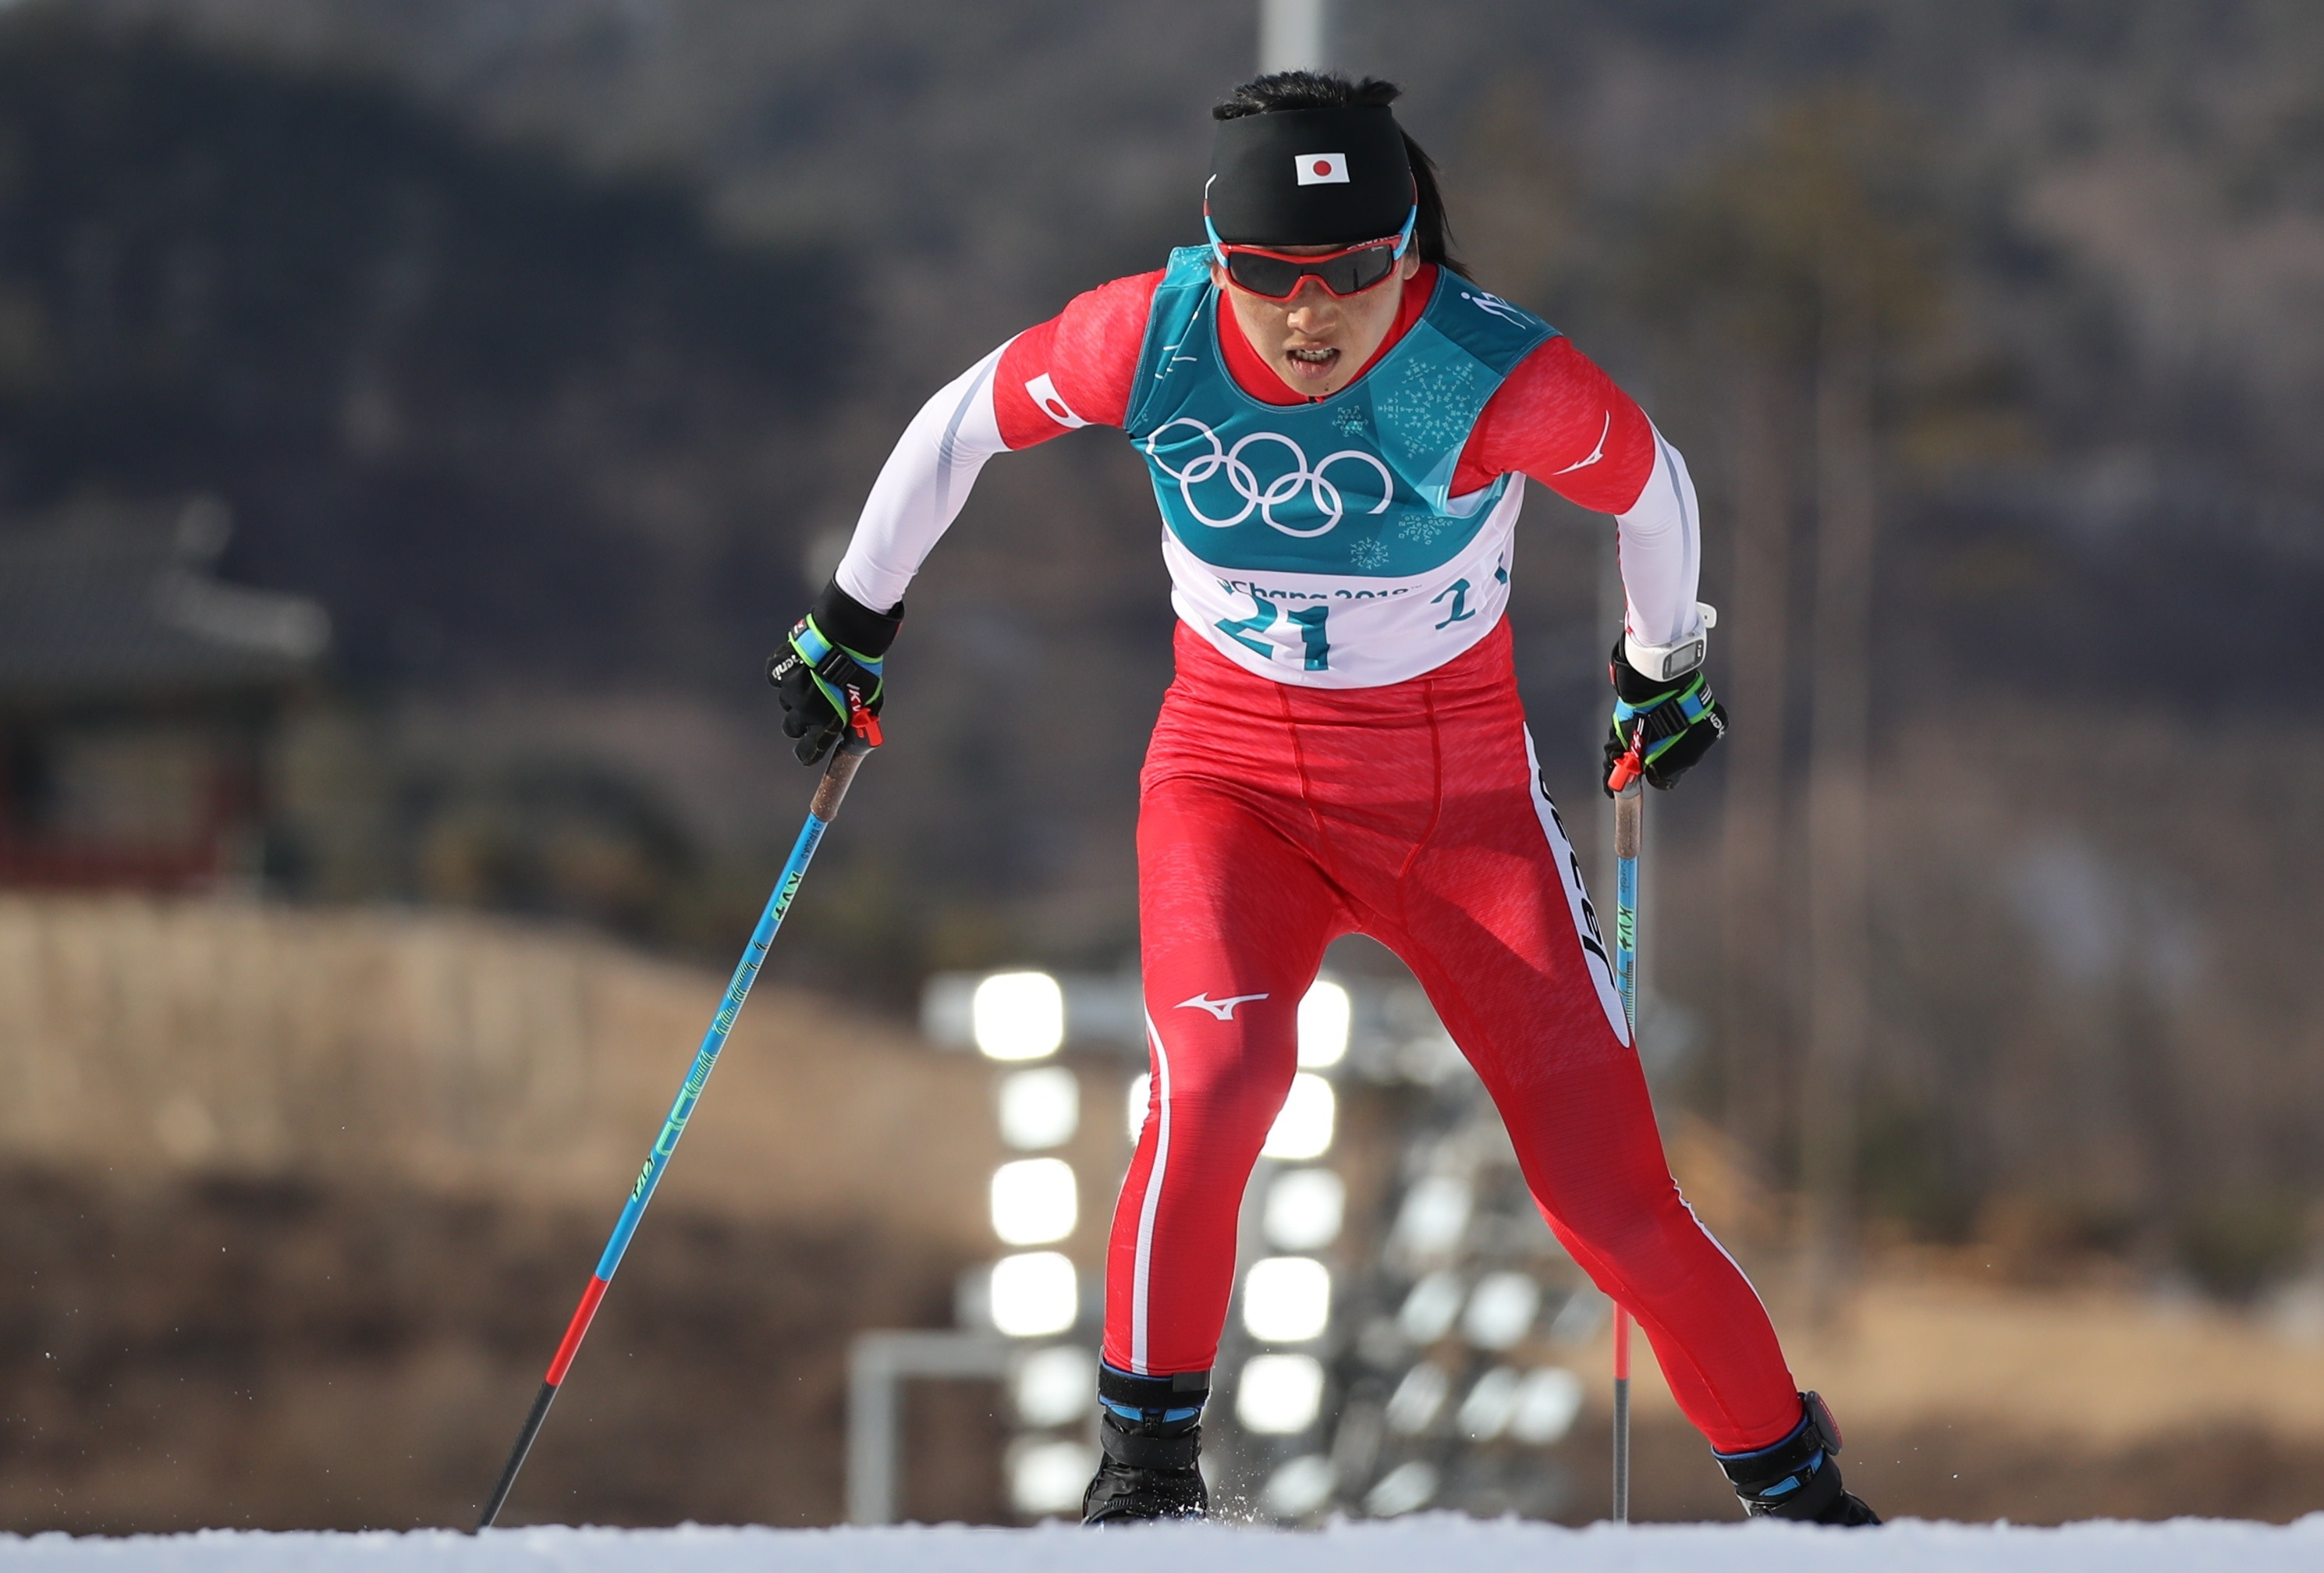 Cross-Country Skiing - Pyeongchang 2018 Winter Olympics - Women's 10km Free - Alpensia Cross-Country Skiing Centre - Pyeongchang, South Korea - February 15, 2018 -  Masako Ishida of Japan competes. REUTERS/Carlos Barria